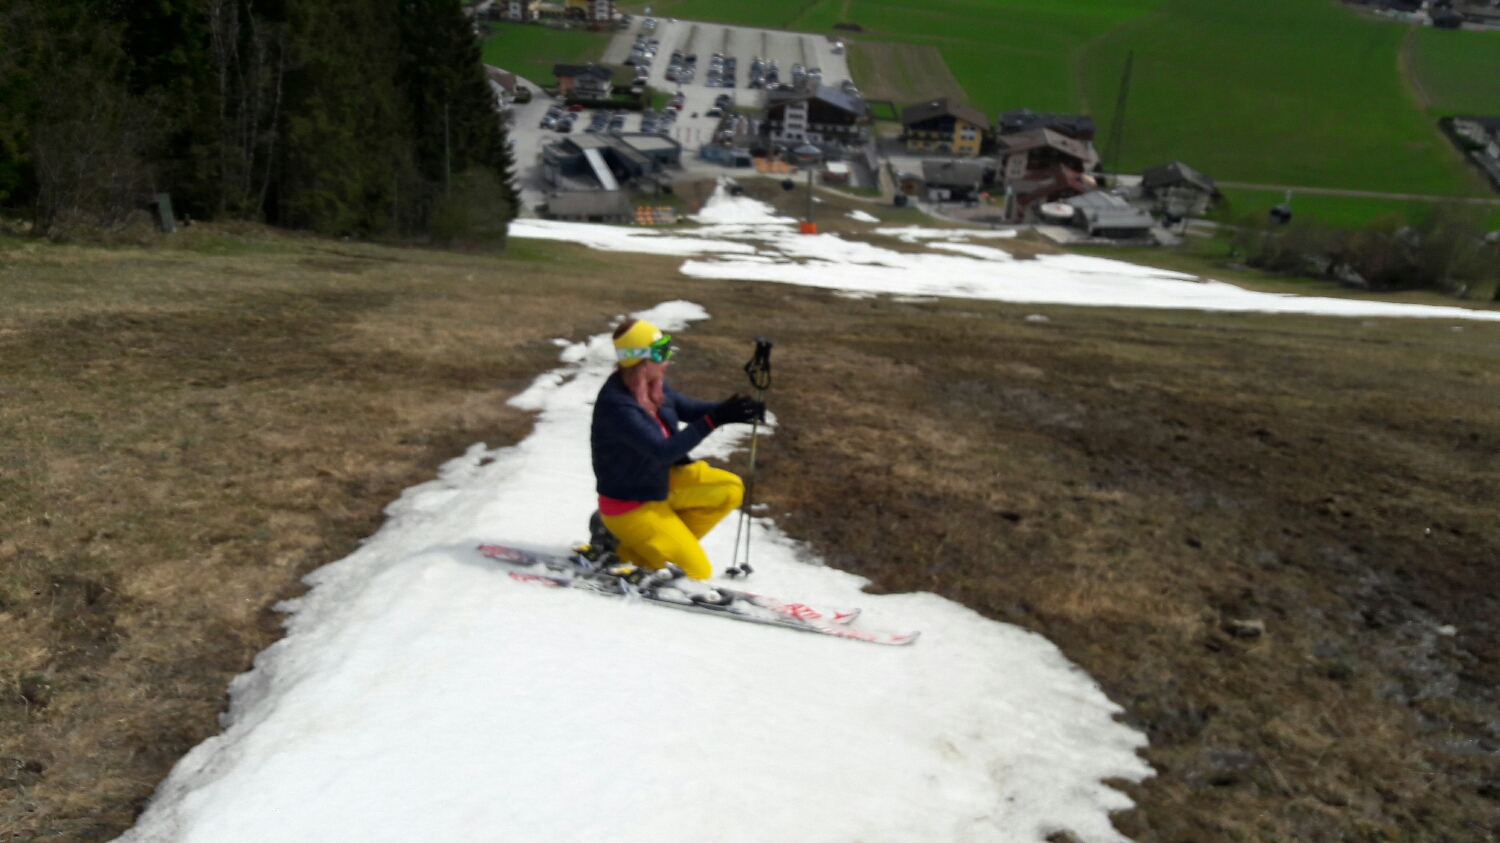 Another blurry photo of Gaby, last day of skiing season 16/17